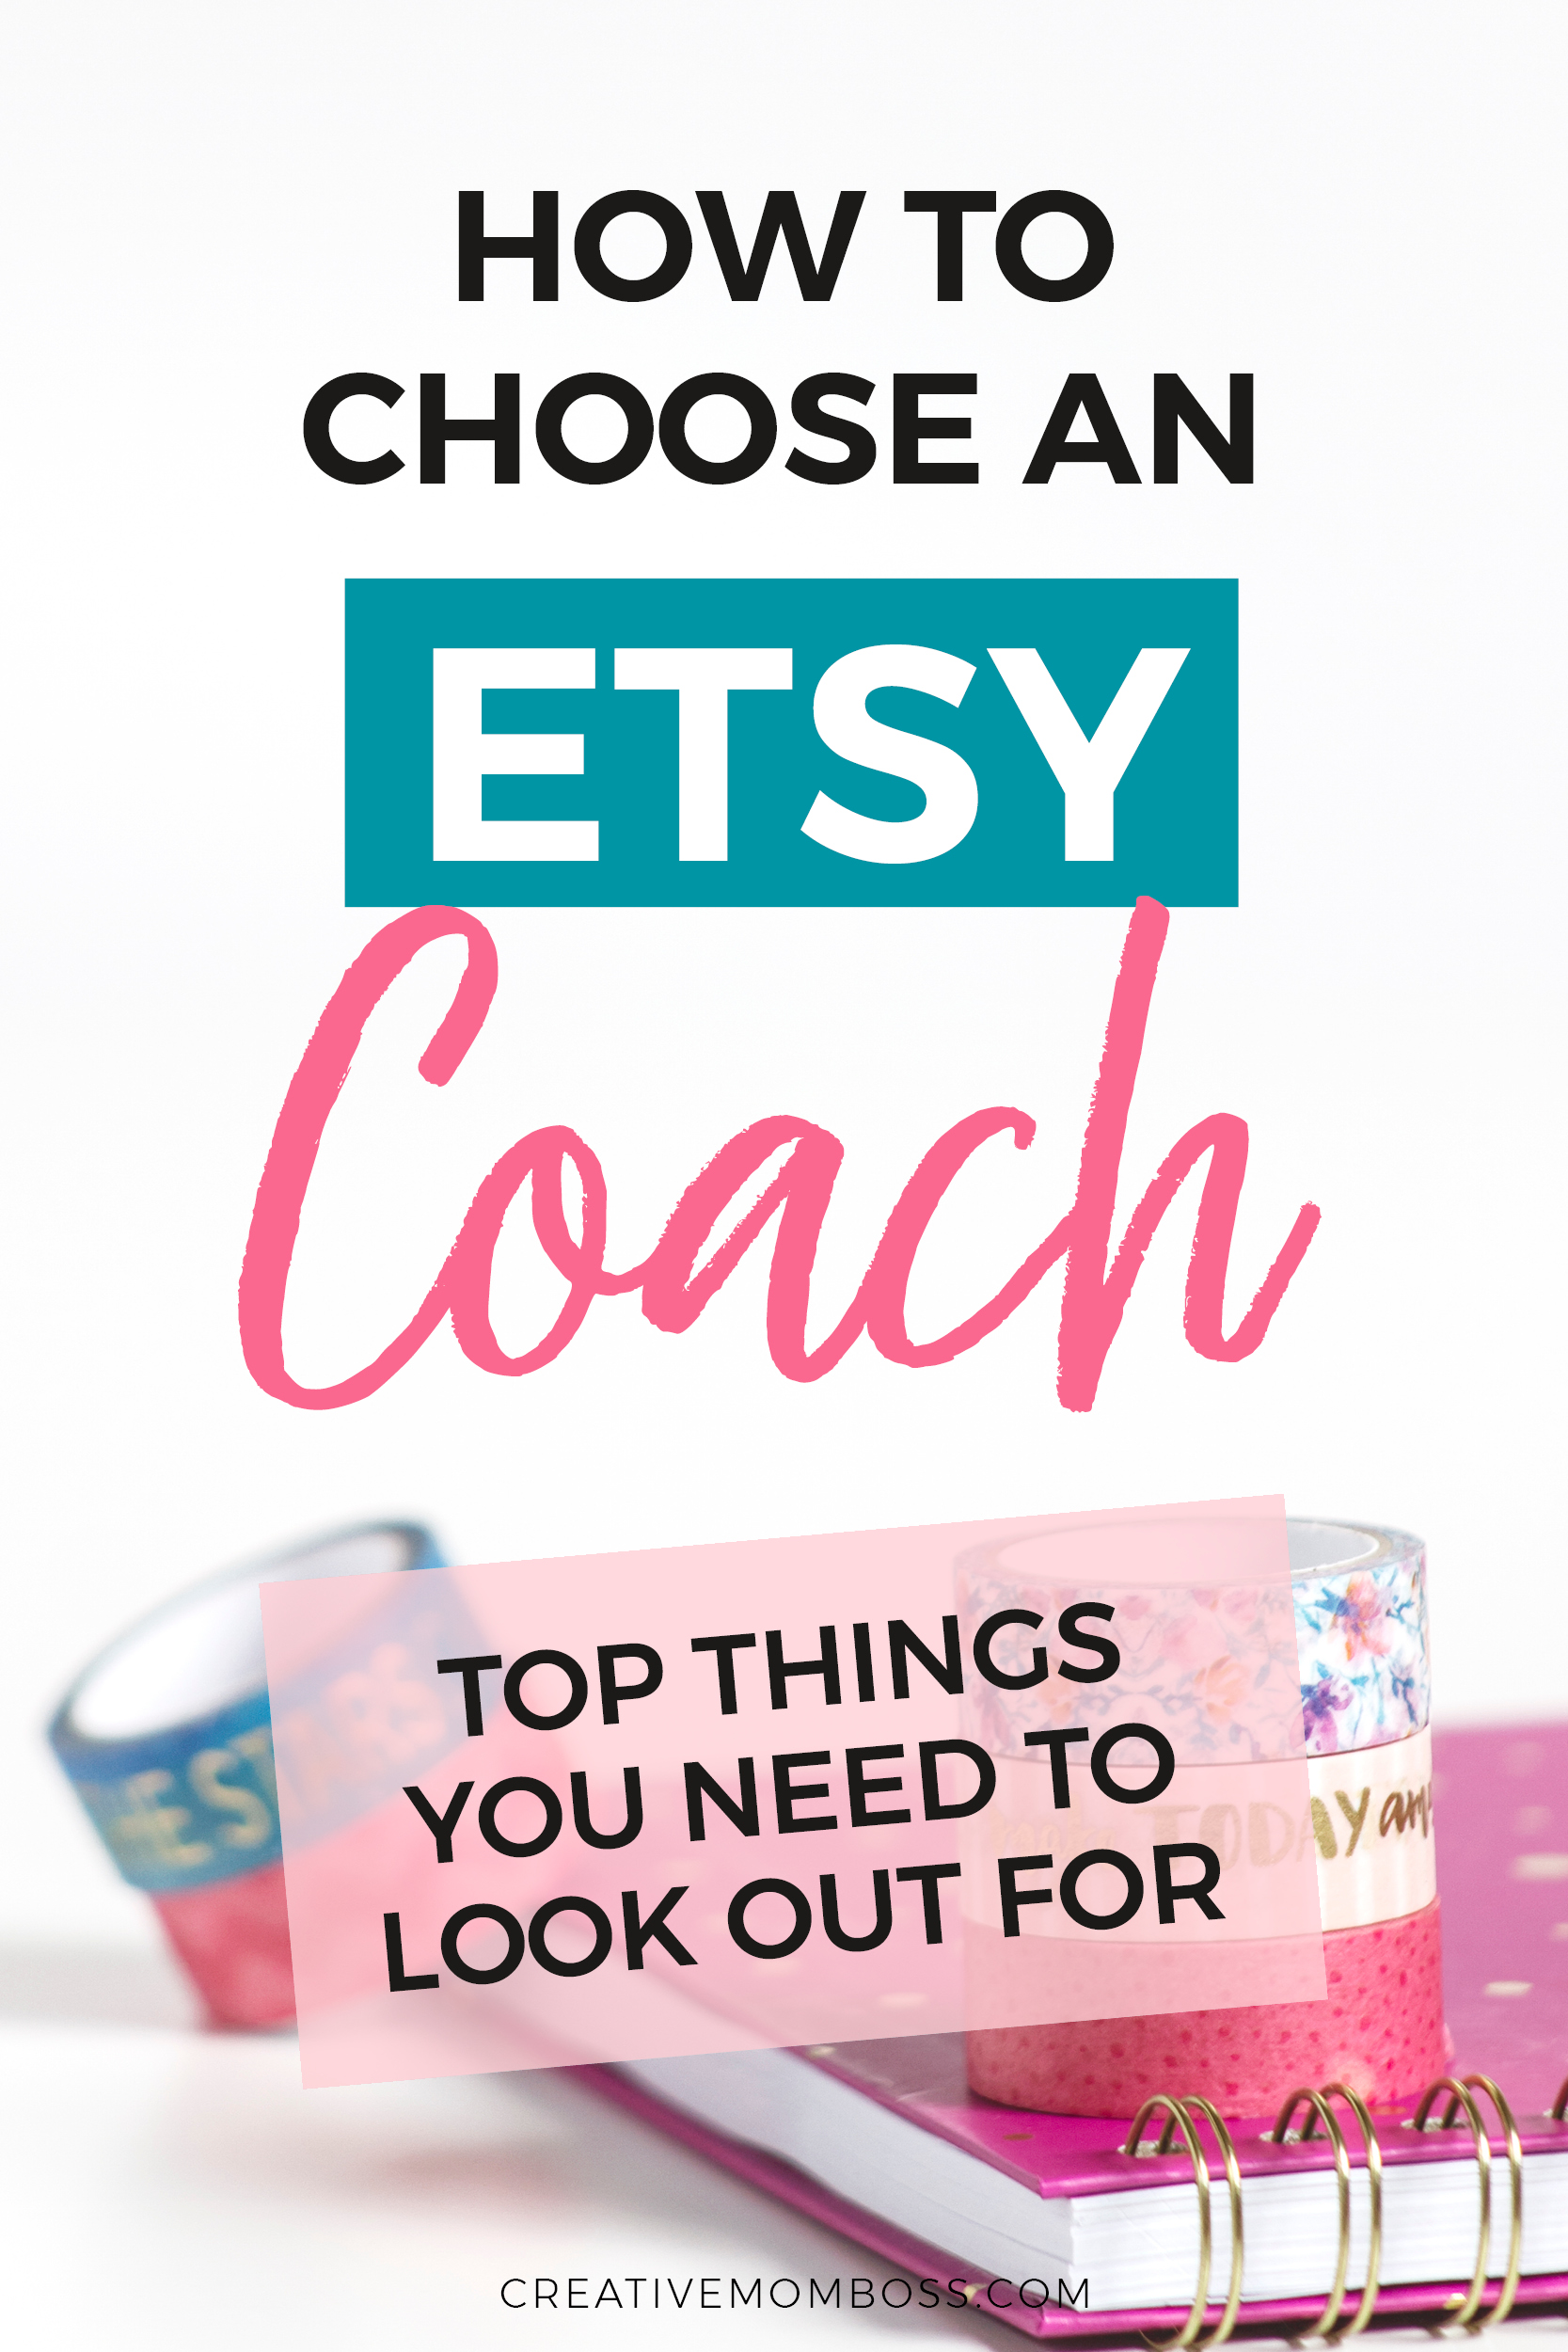 Etsy coaches - what to look out for and how not to get ripped off